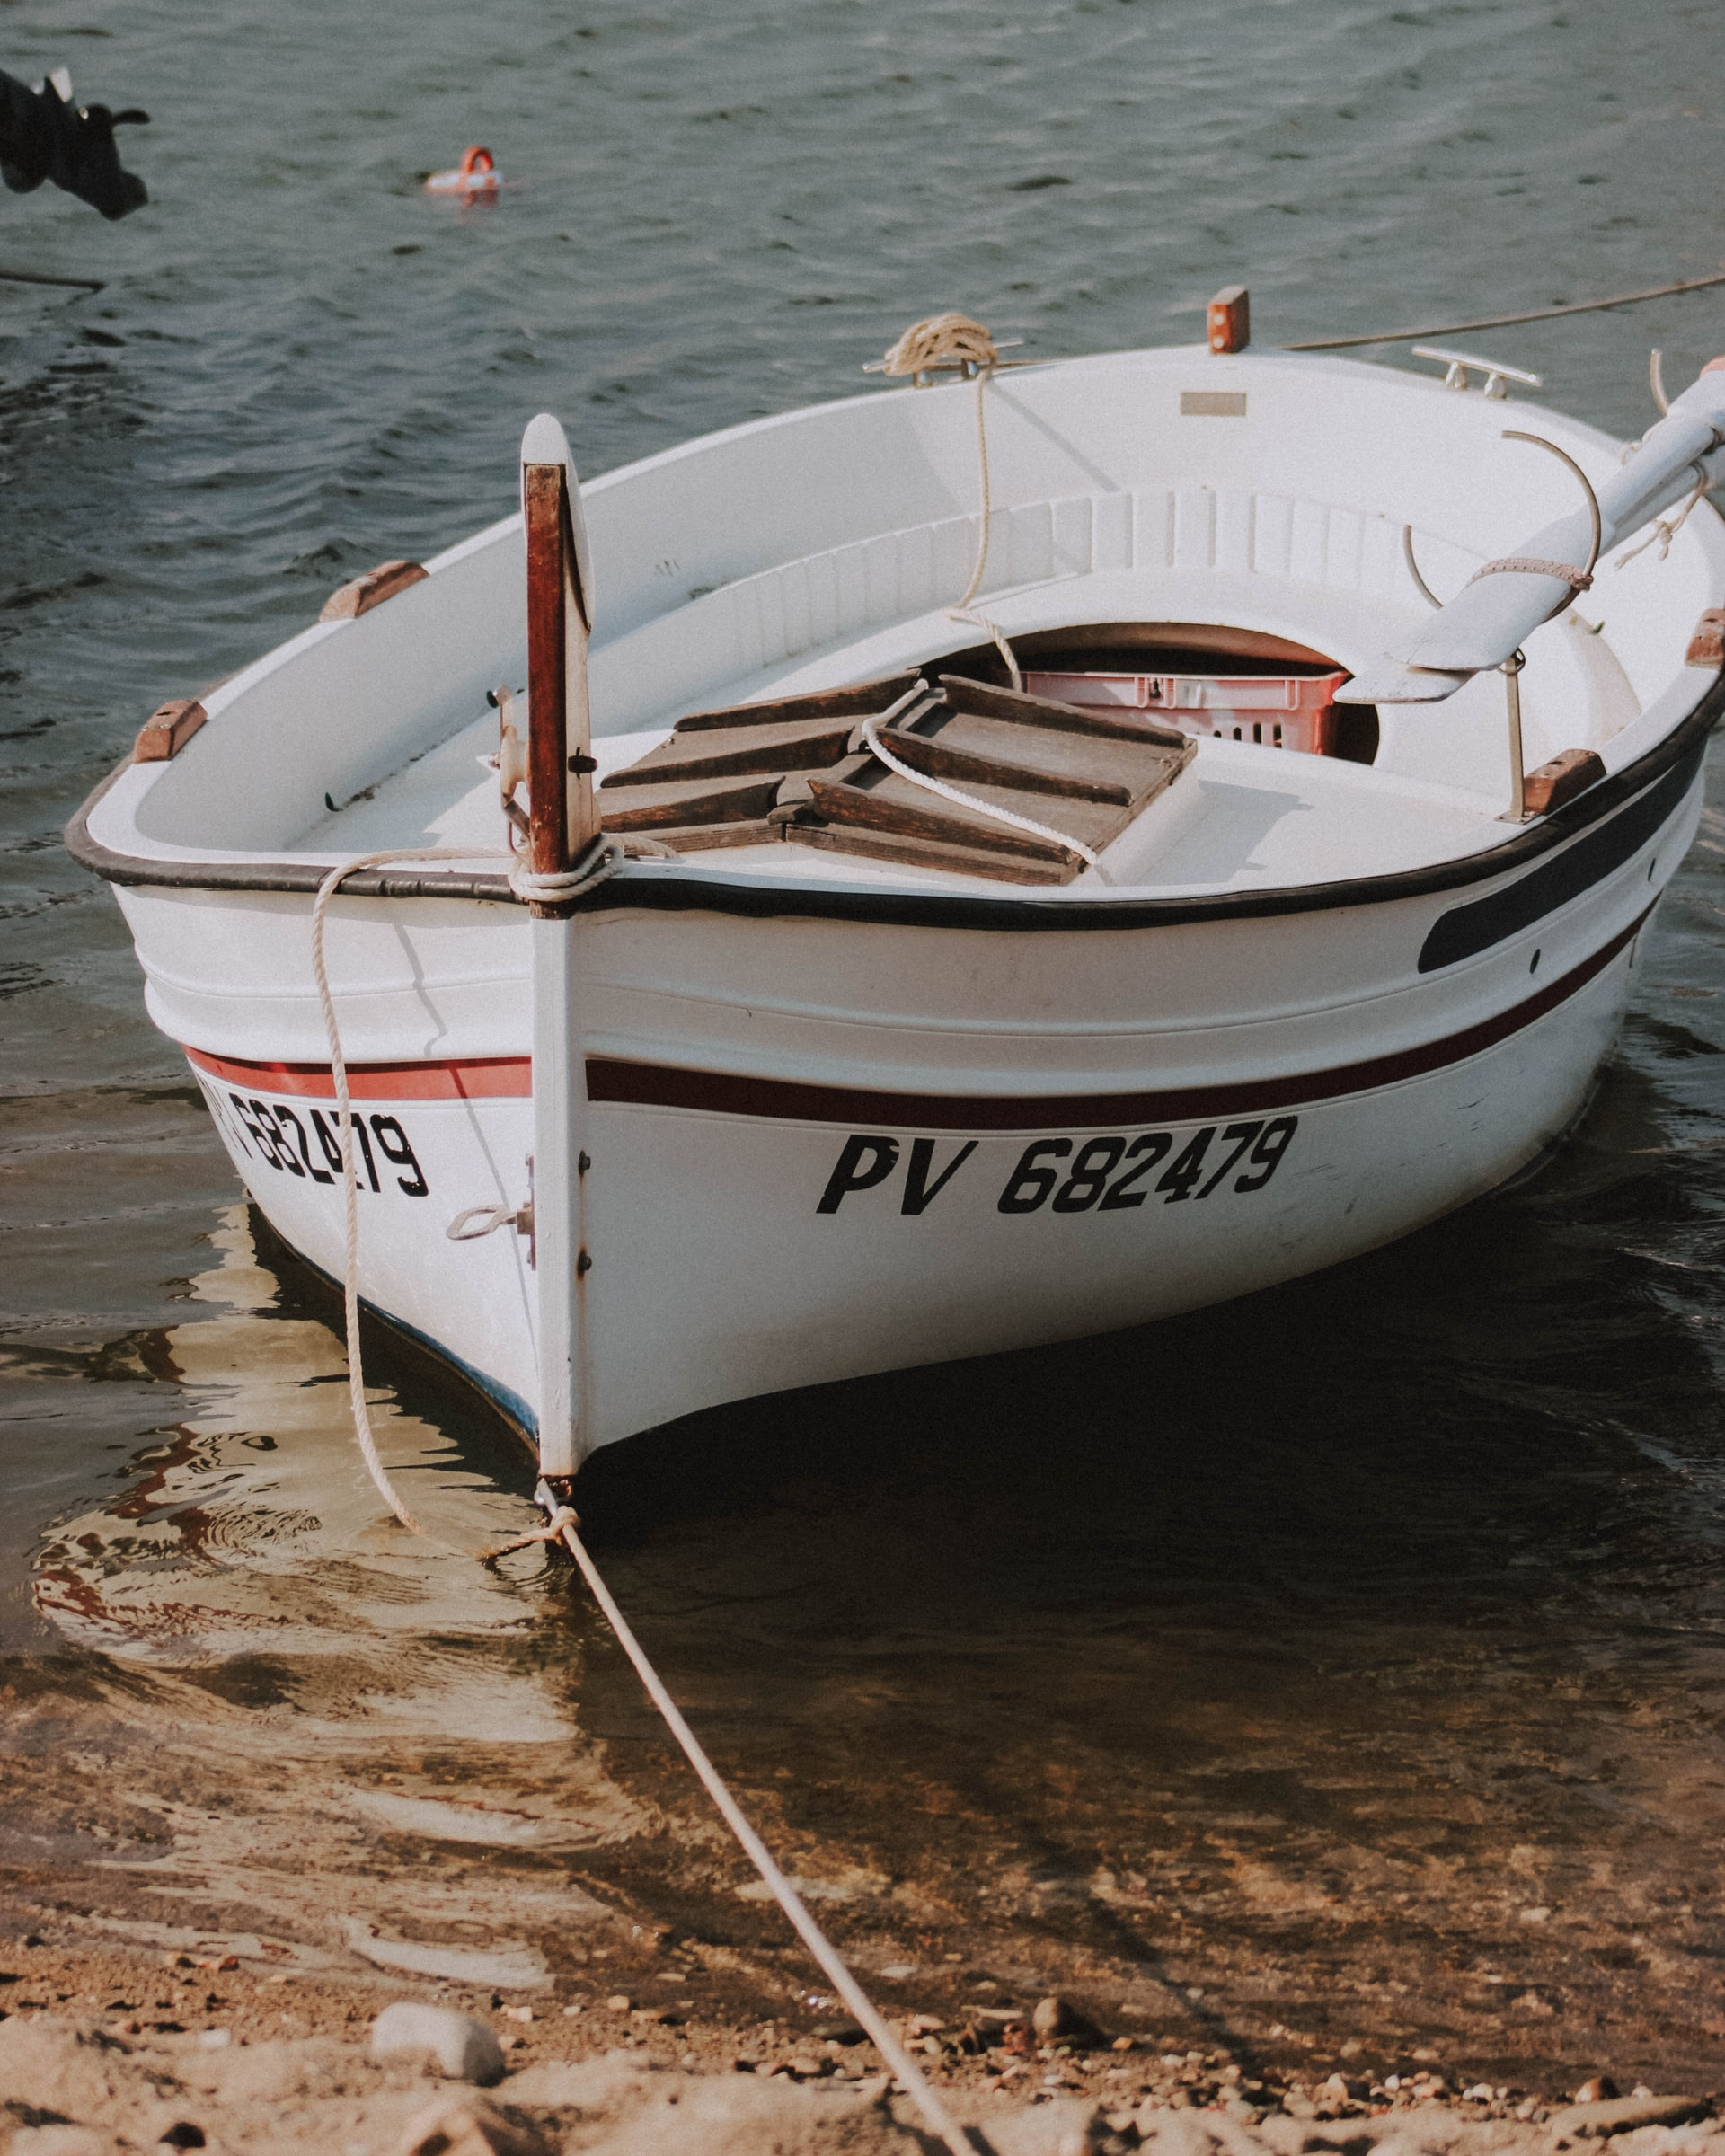 A dinghy boat securely tied up